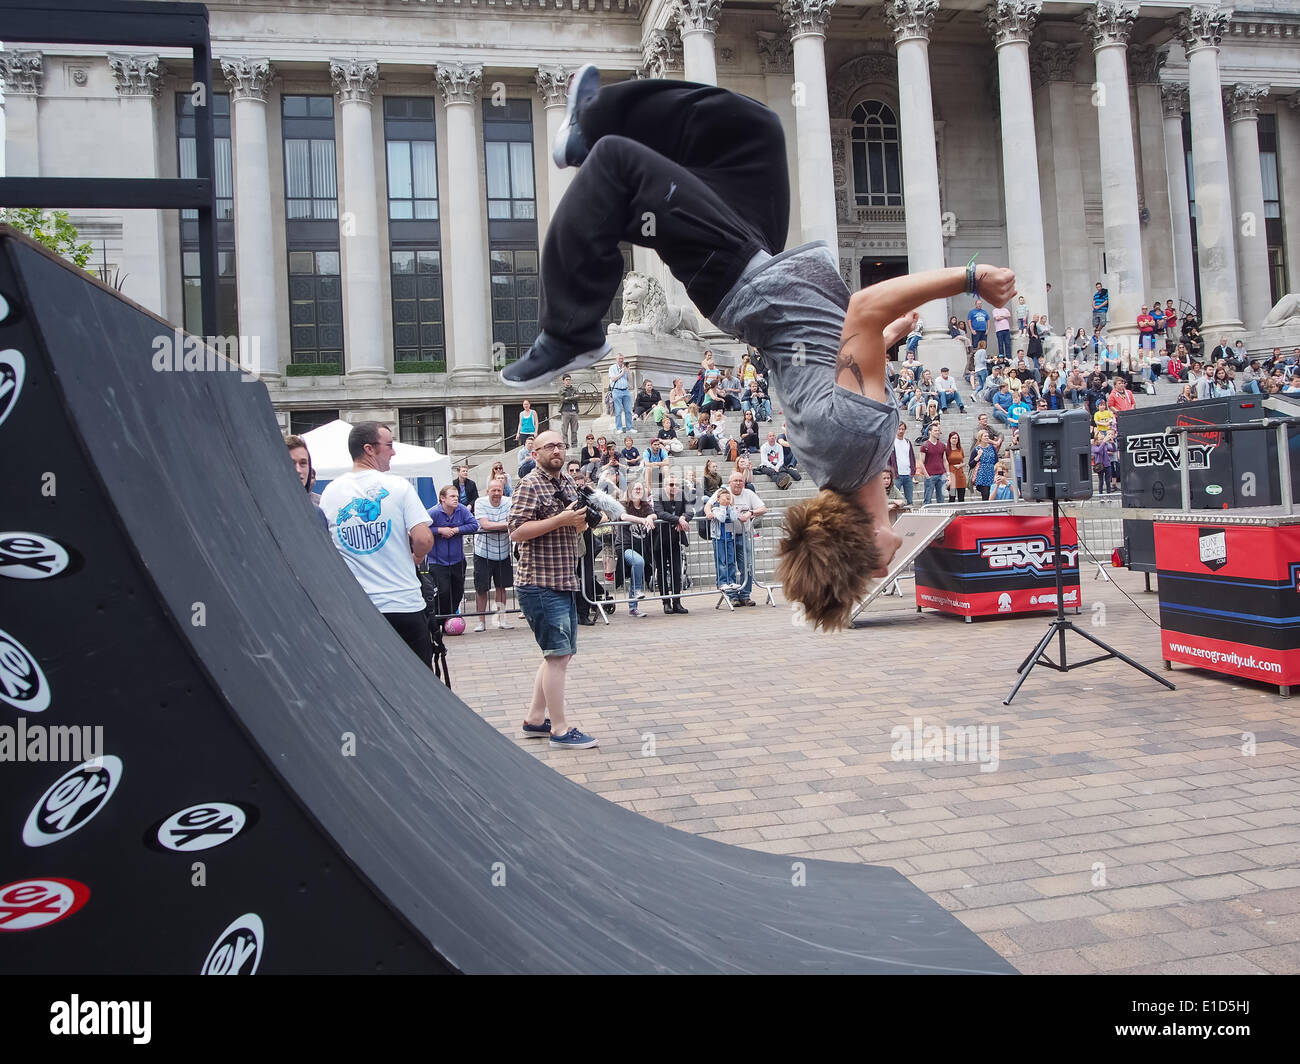 A street runner uses a quarter pipe to flip himself during the Portsmouth street games 2014 - Stock Image